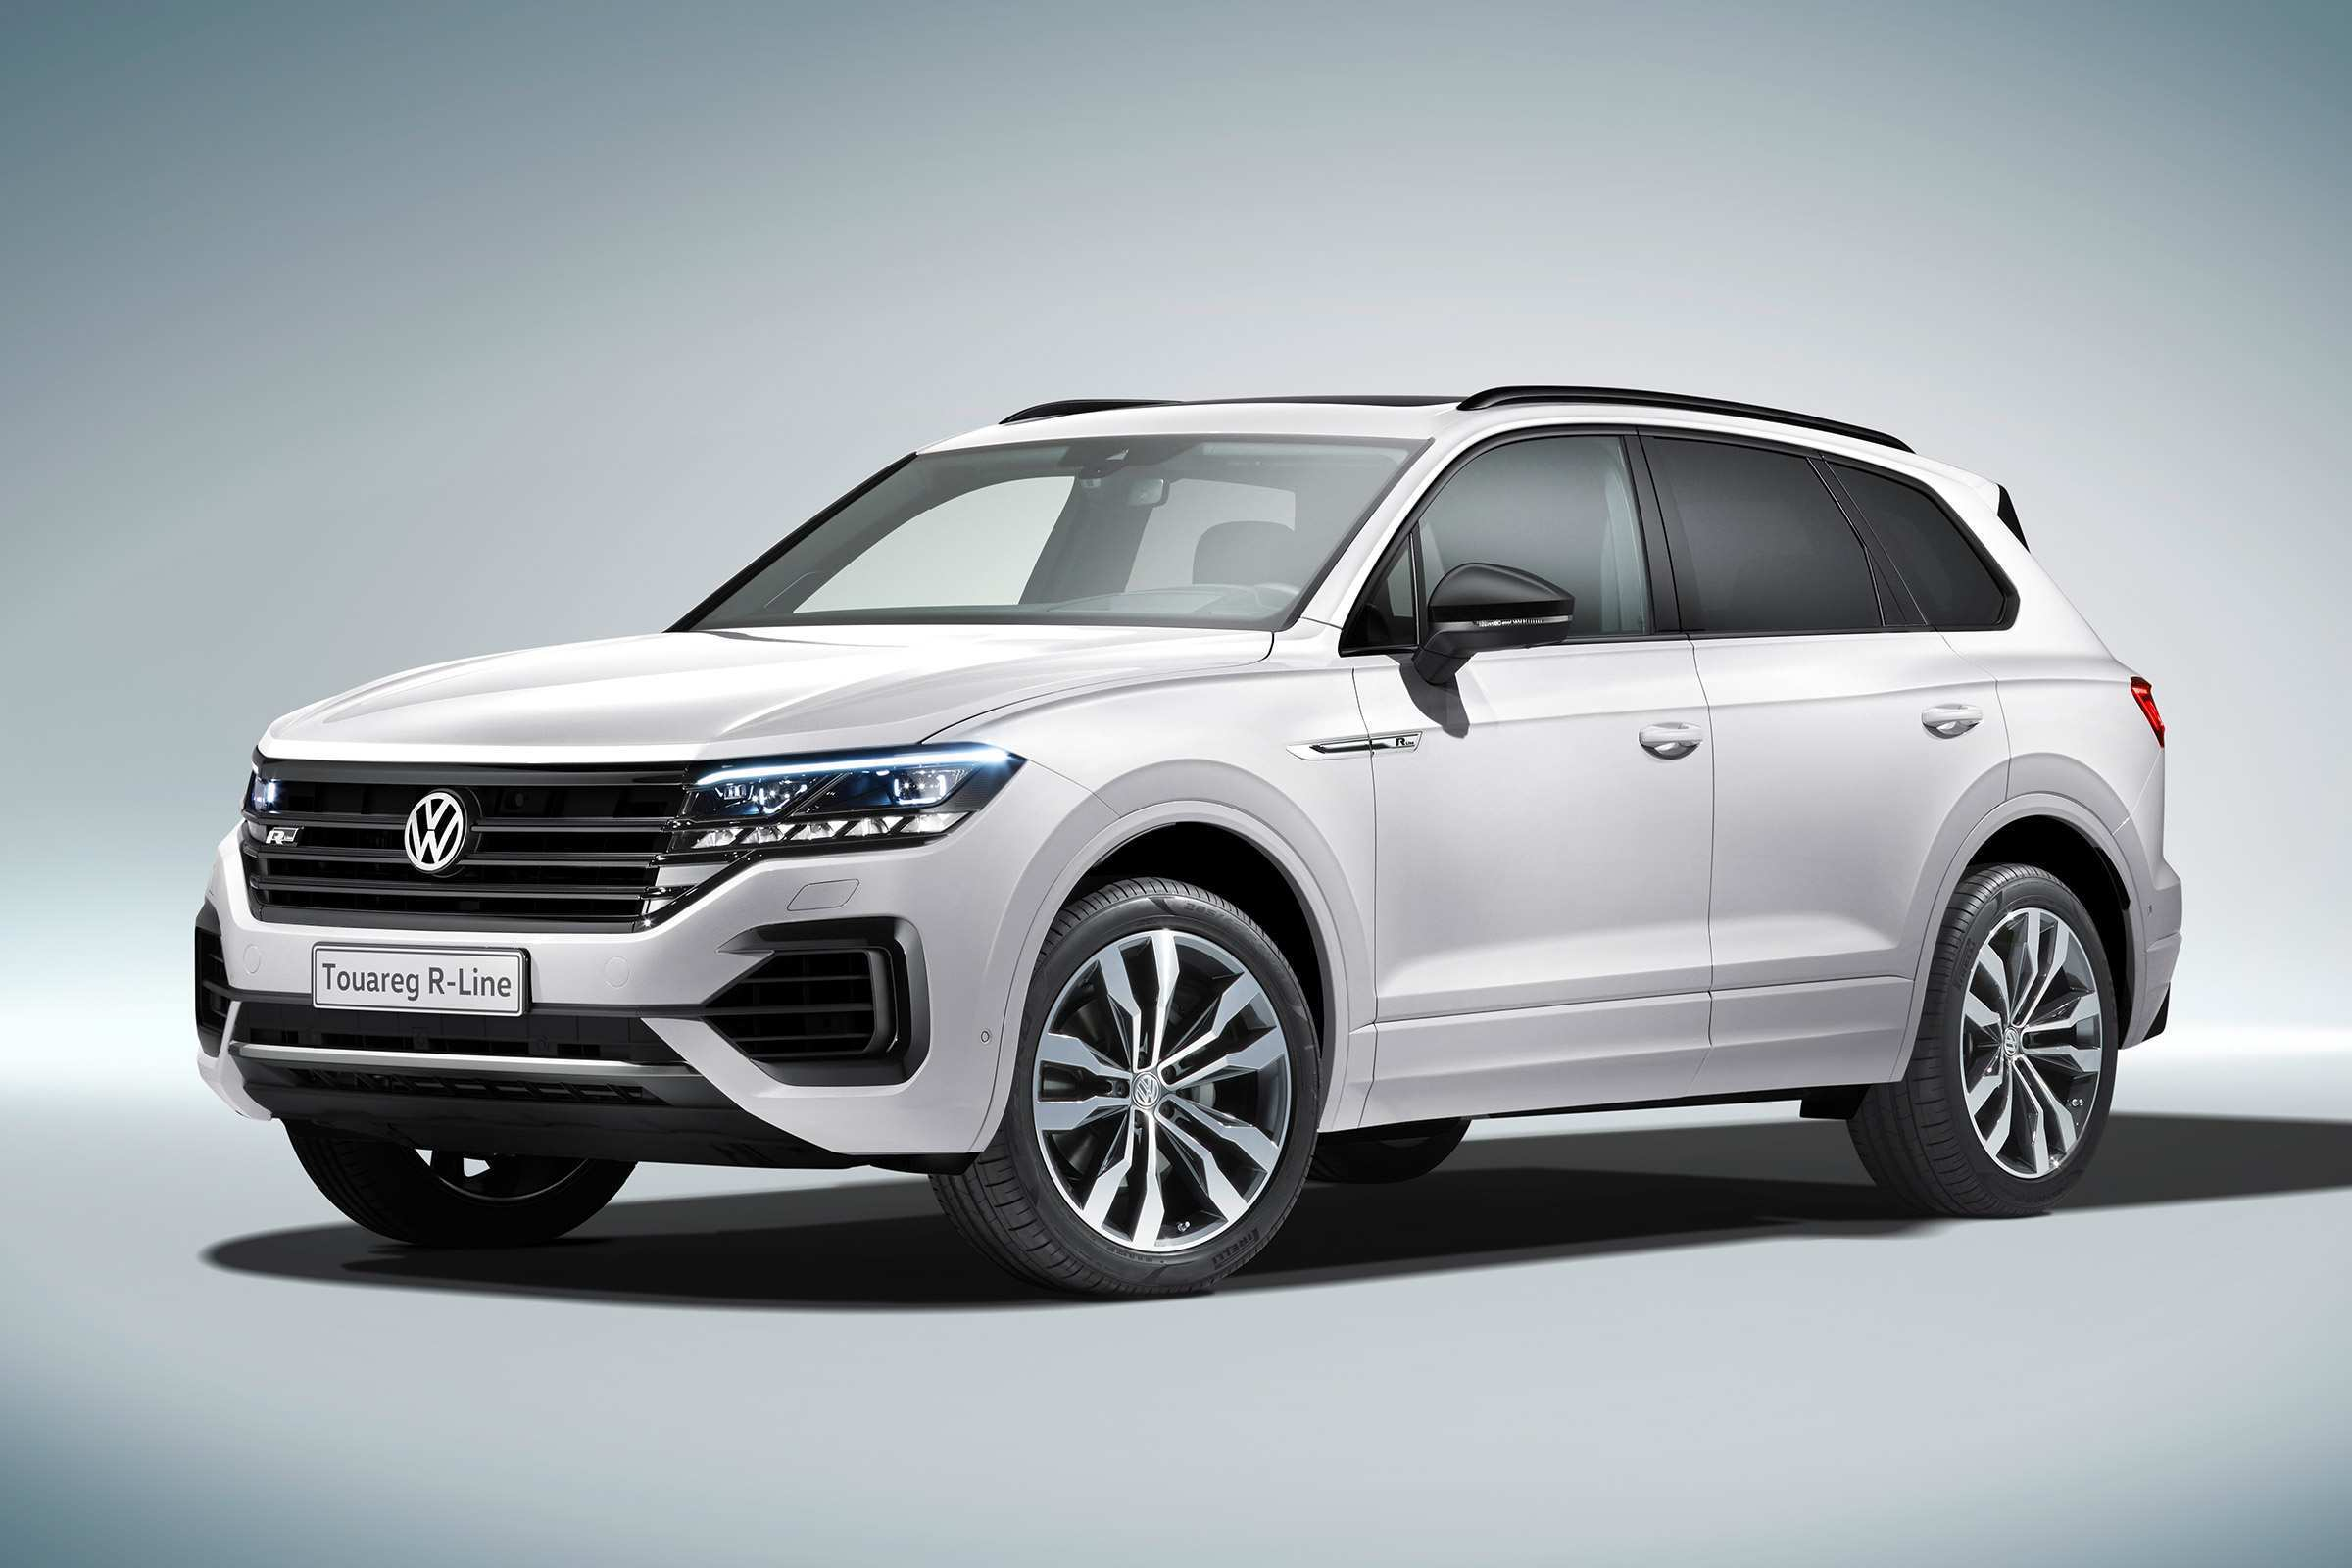 33 All New Volkswagen Touareg 2019 Off Road Specs Wallpaper by Volkswagen Touareg 2019 Off Road Specs